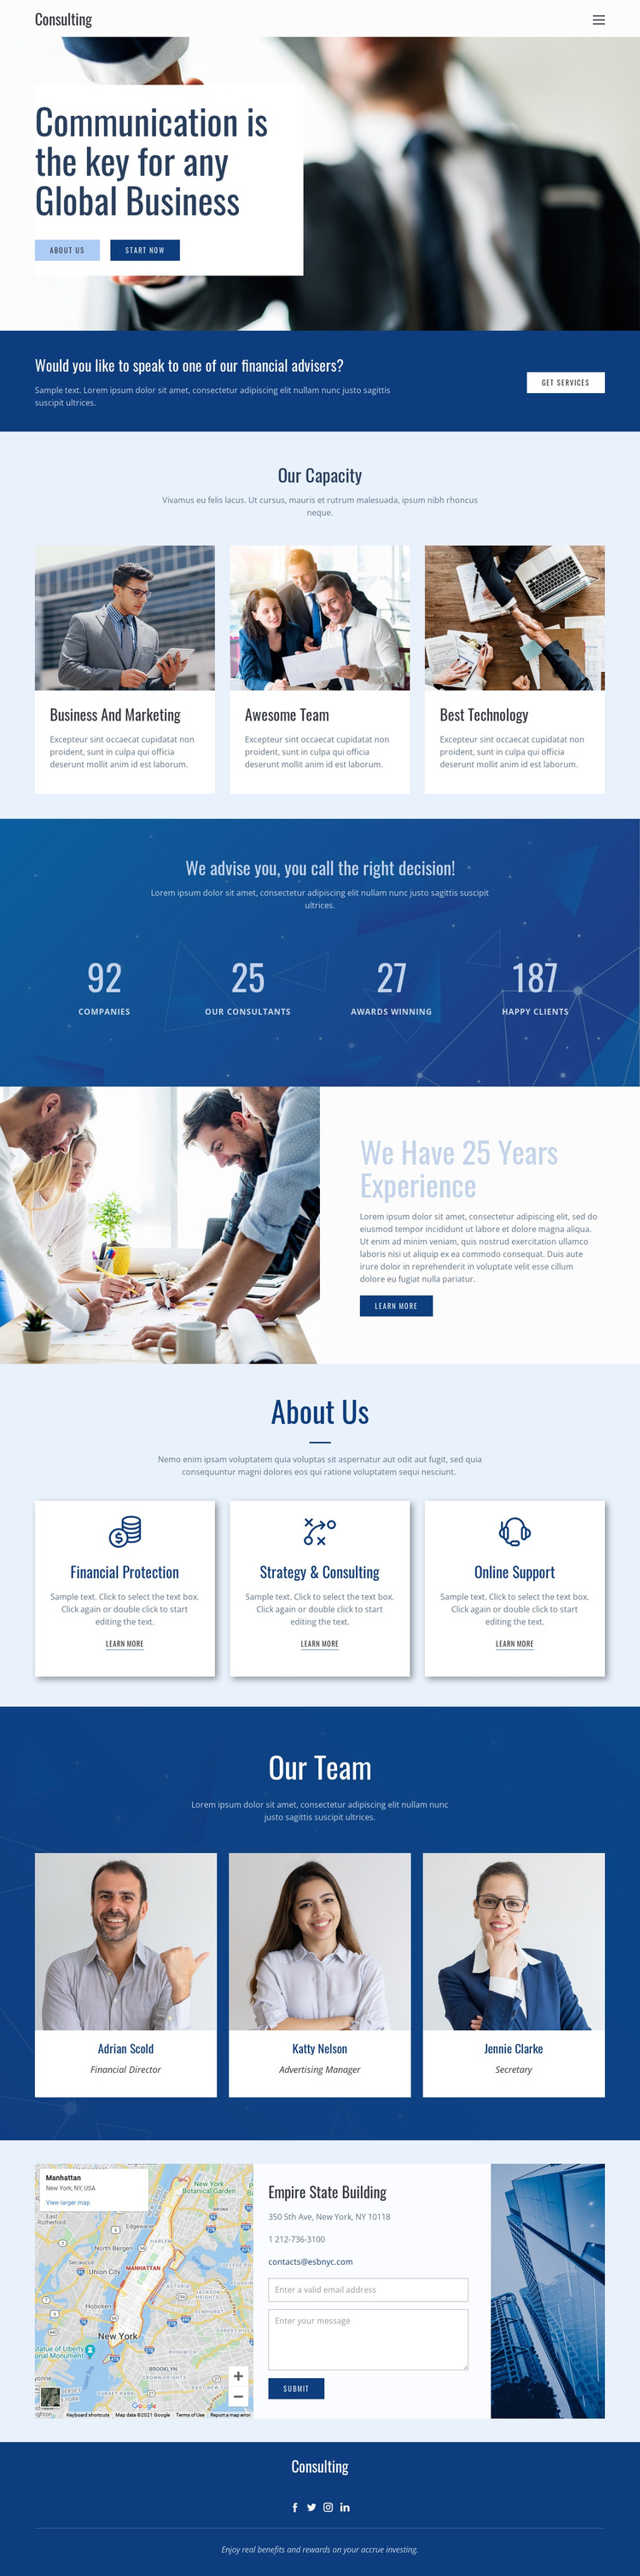 Key to global business HTML5 Template